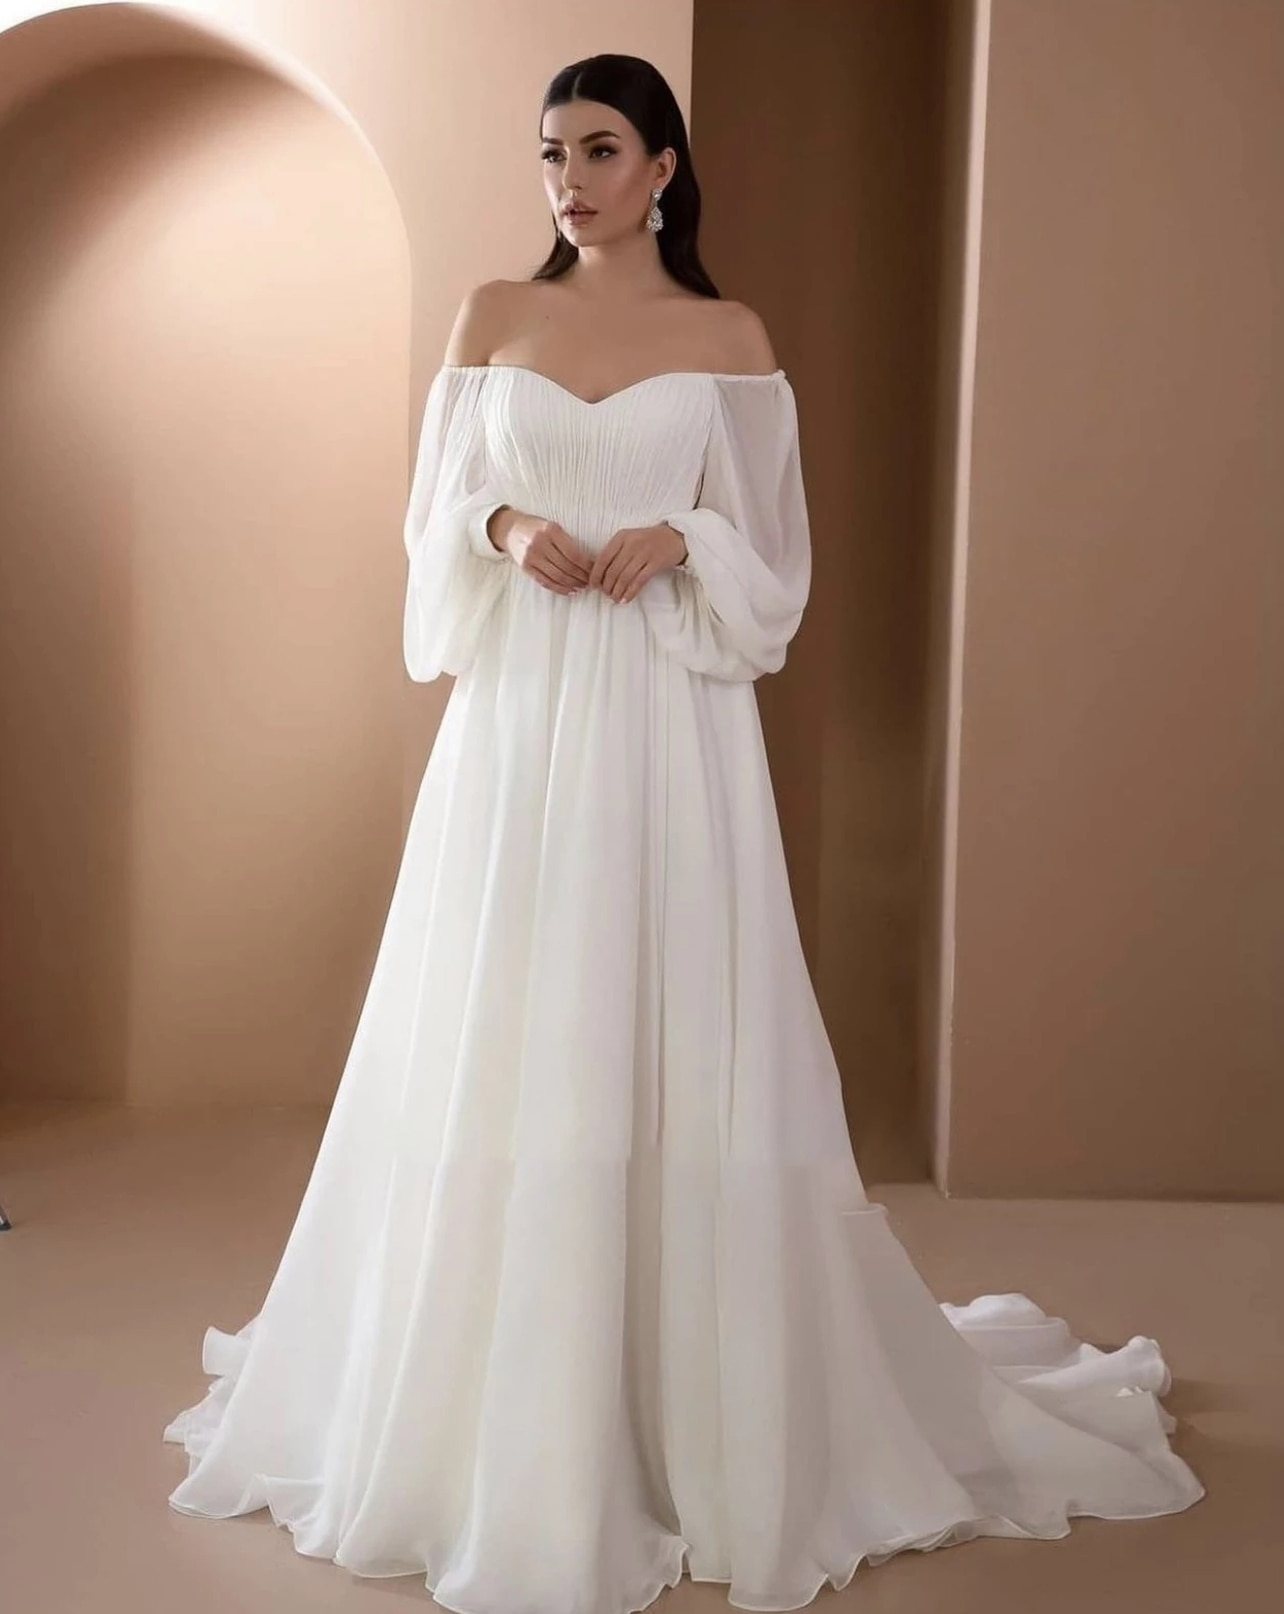 Get Dignified Wedding Dress Chiffon With Sweetheart Train Full Sleeve Backless Zipper With Tailor-maderobe